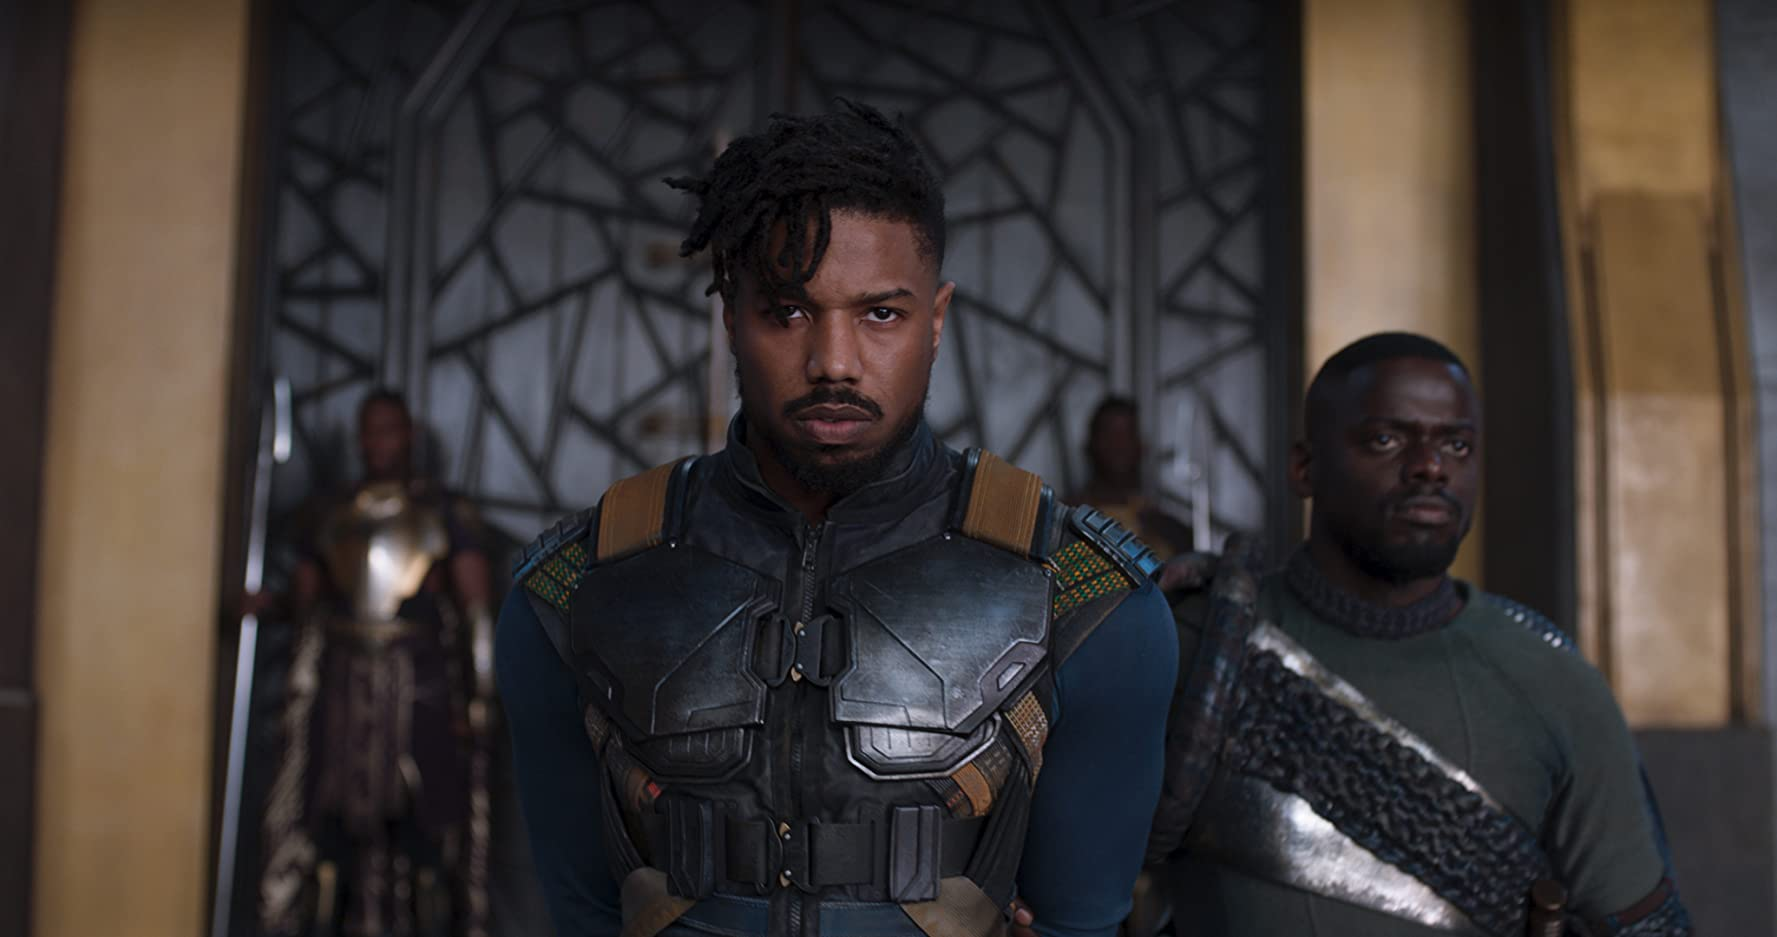 Michael B. Jordan and Daniel Kaluuya in Black Panther (2018)